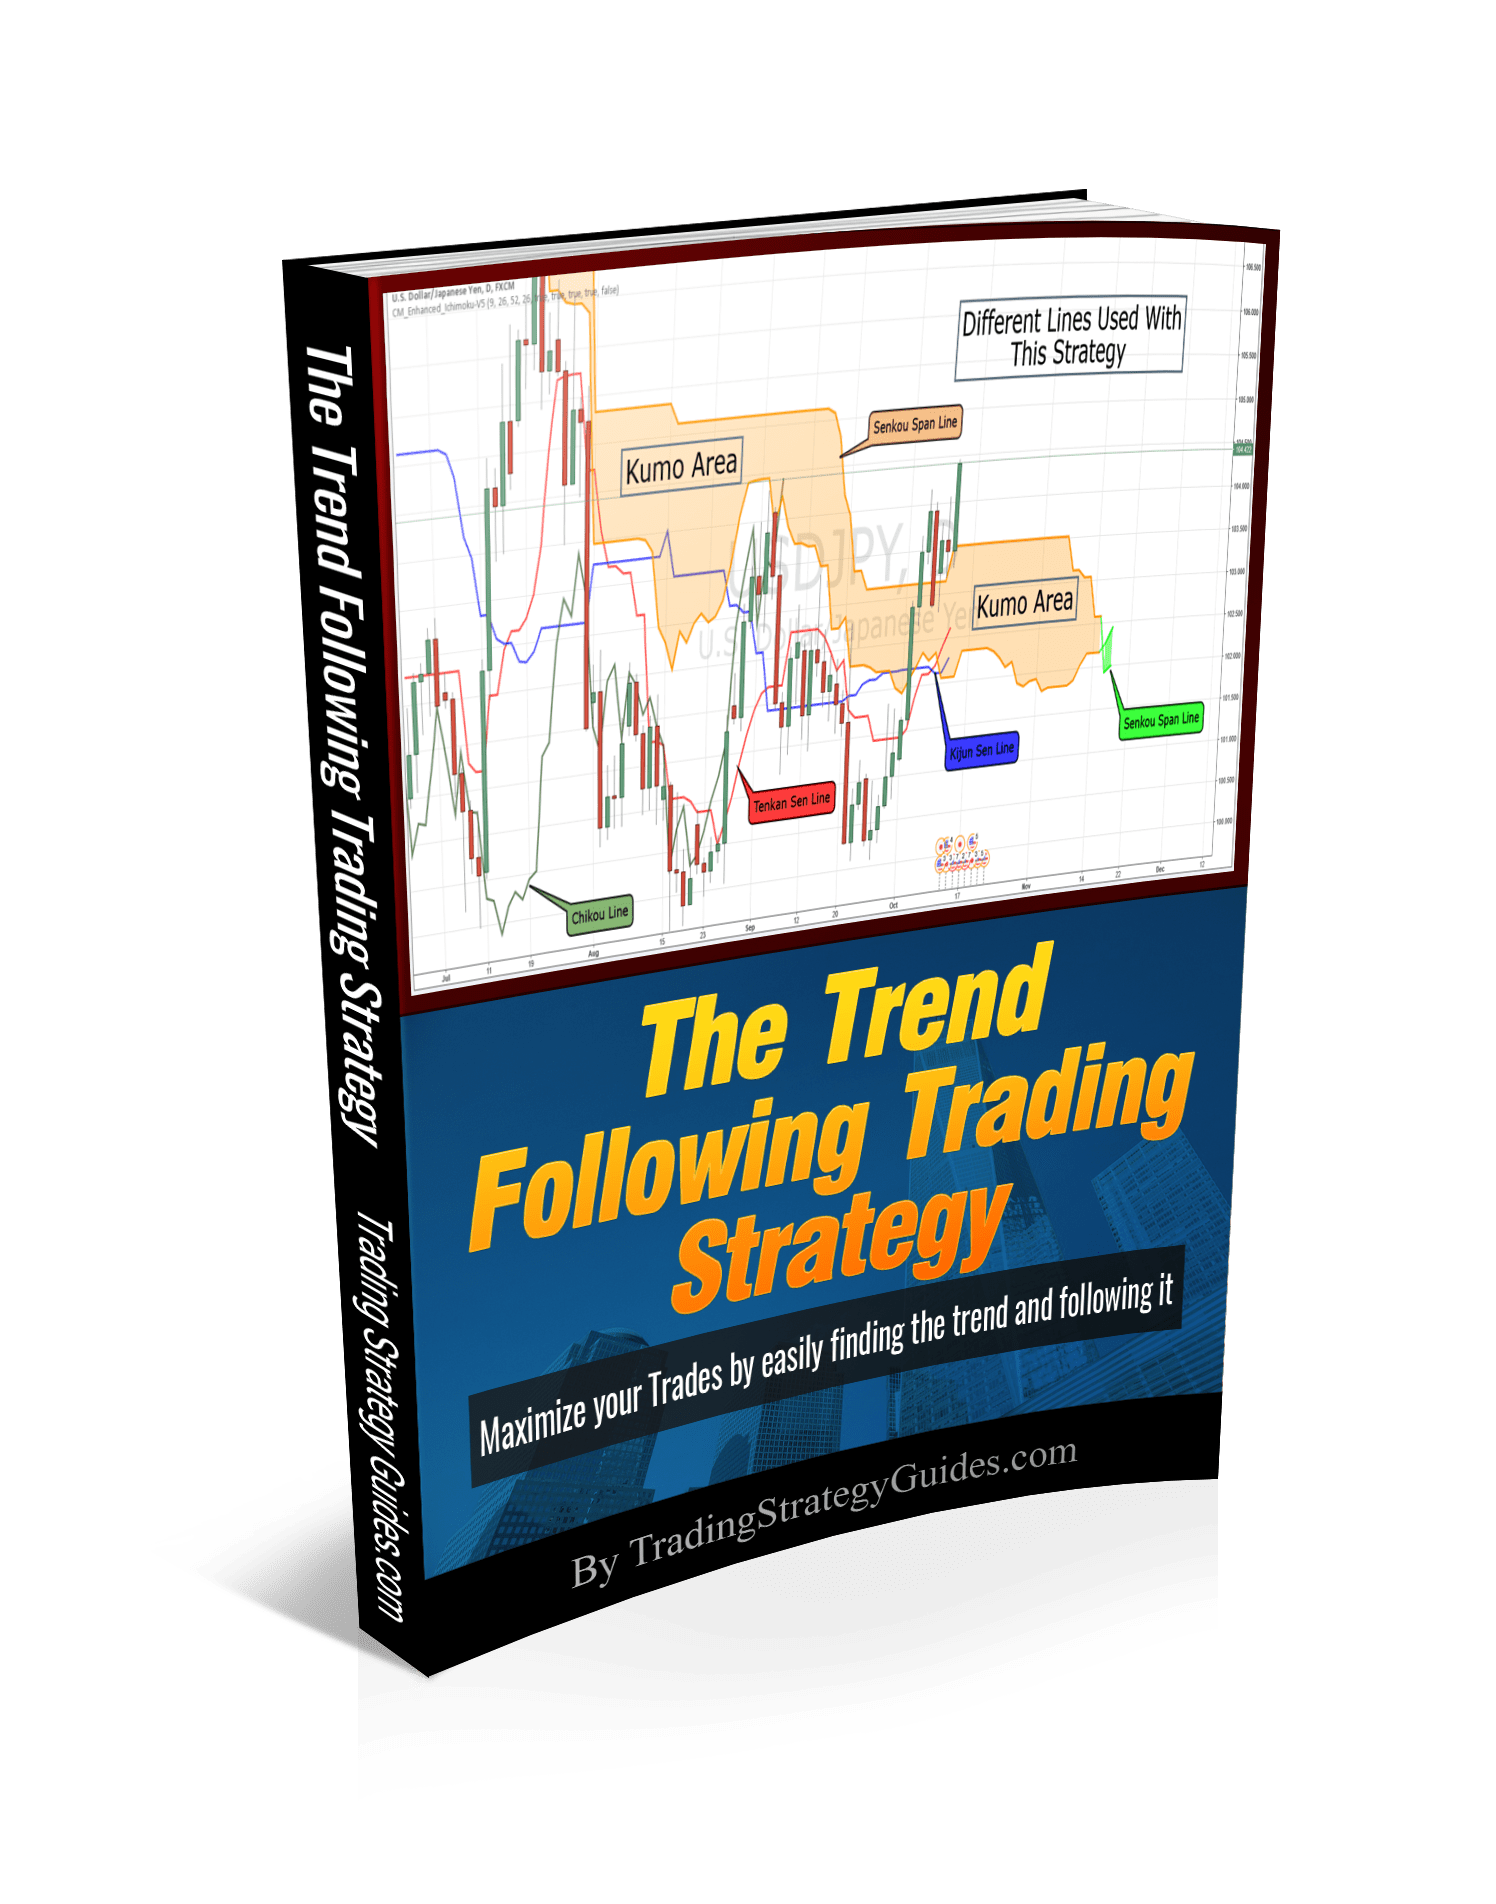 The Trend Following Trading Strategy